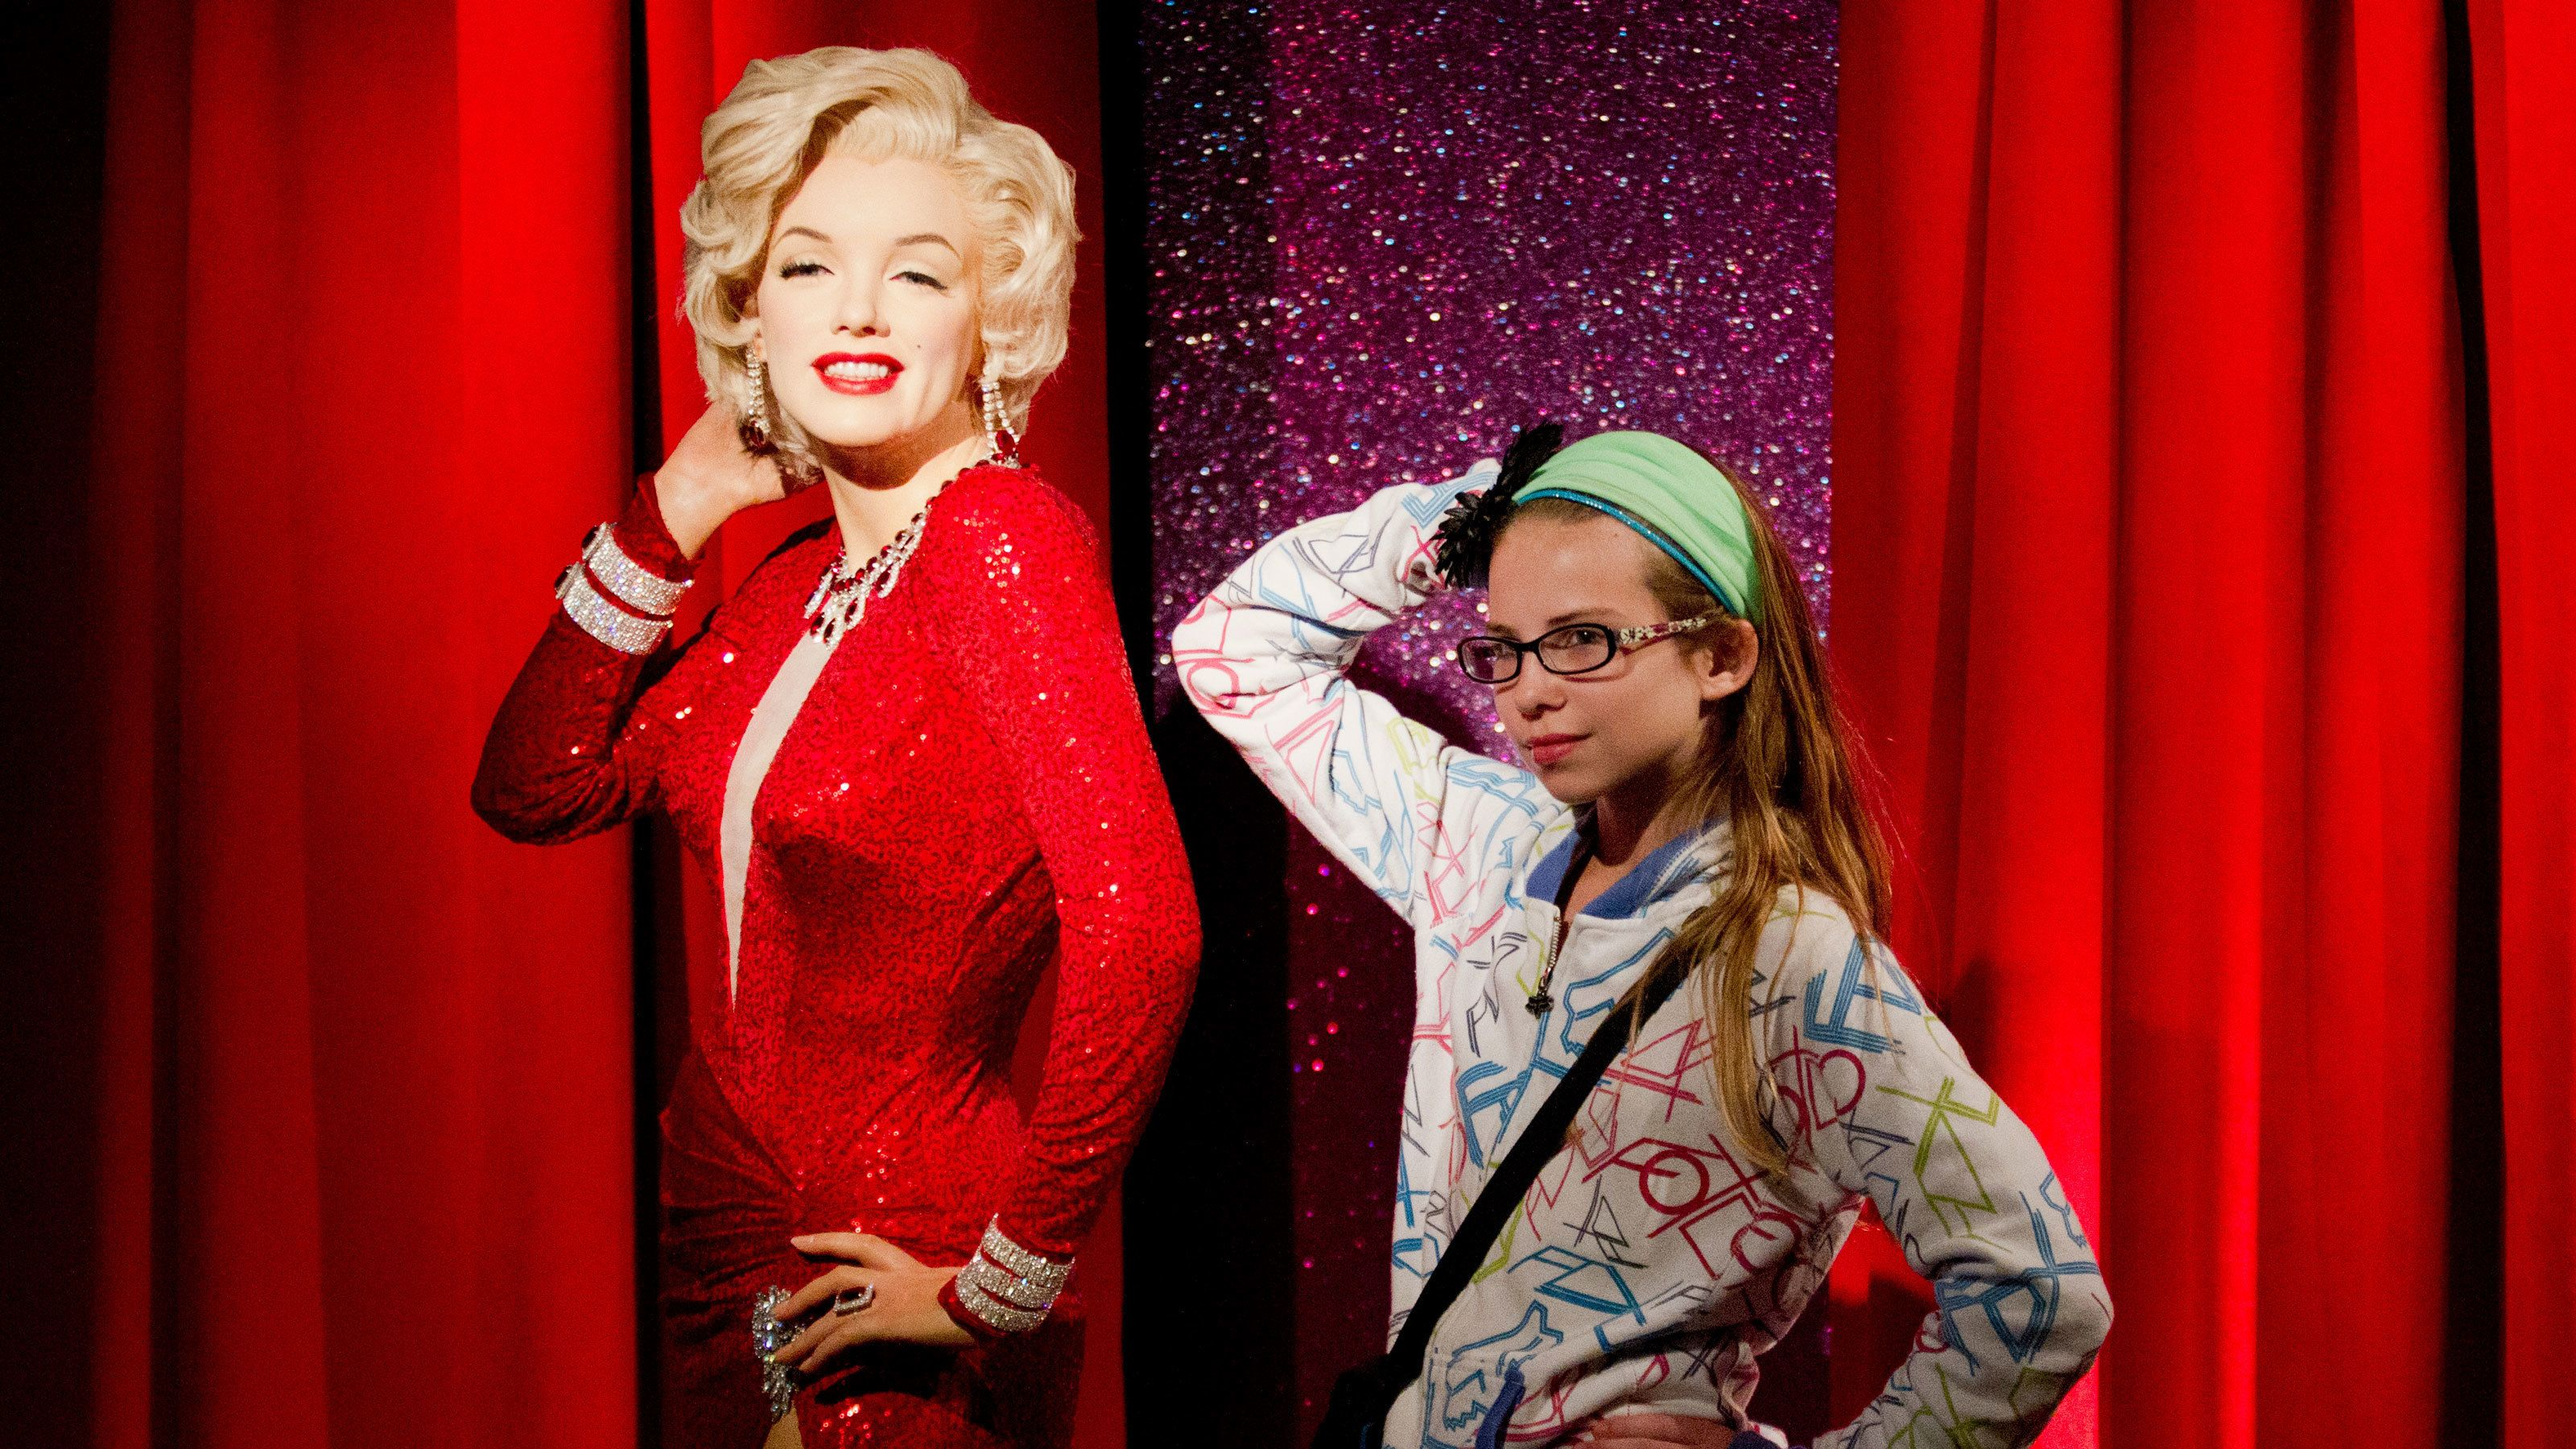 Girl posing with Marilyn Monroe wax figure at Madame Tussauds in San Francisco